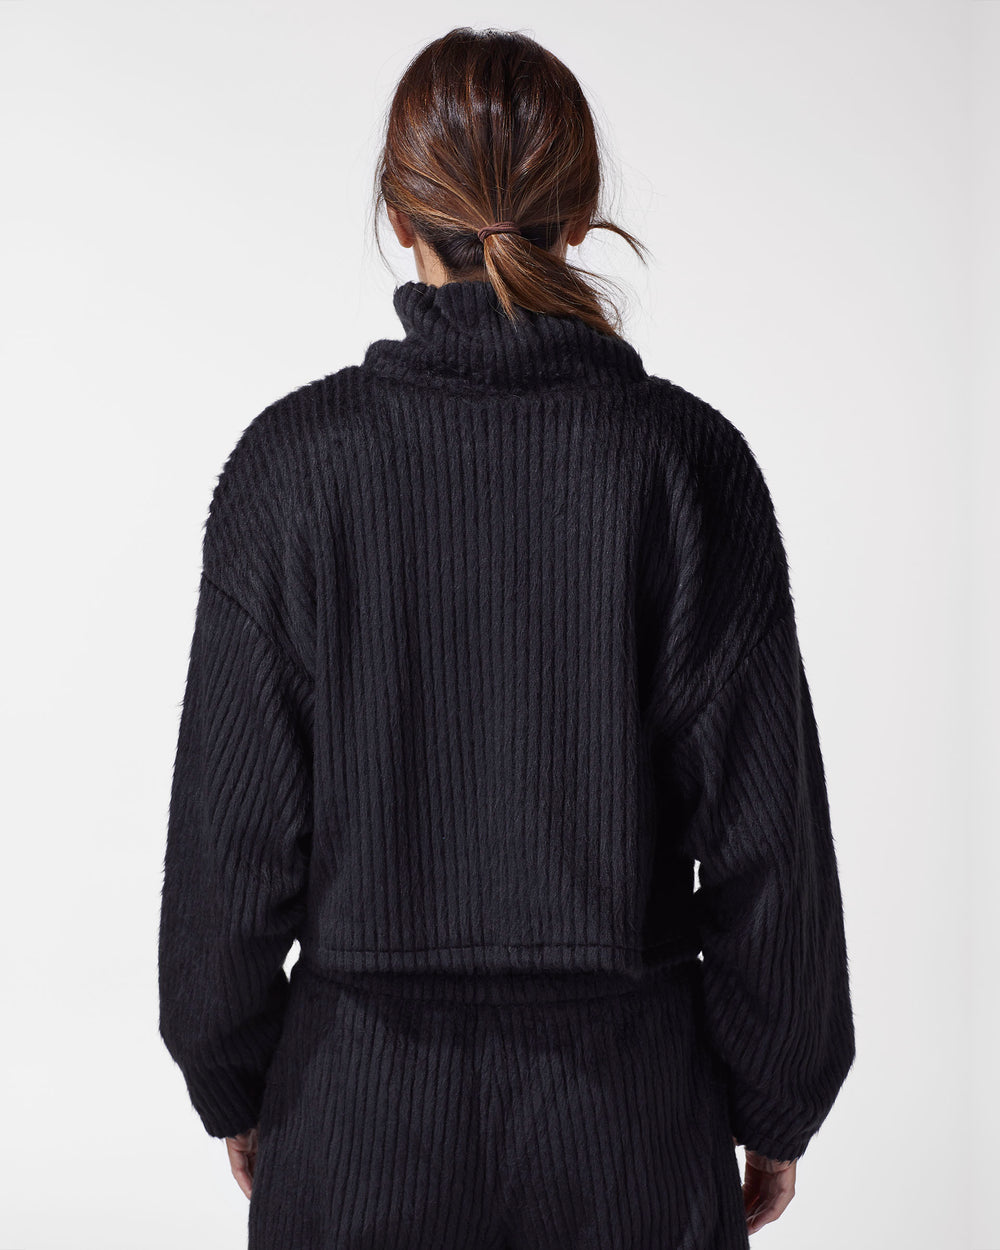 Juniper Ribbed Sweater - Black